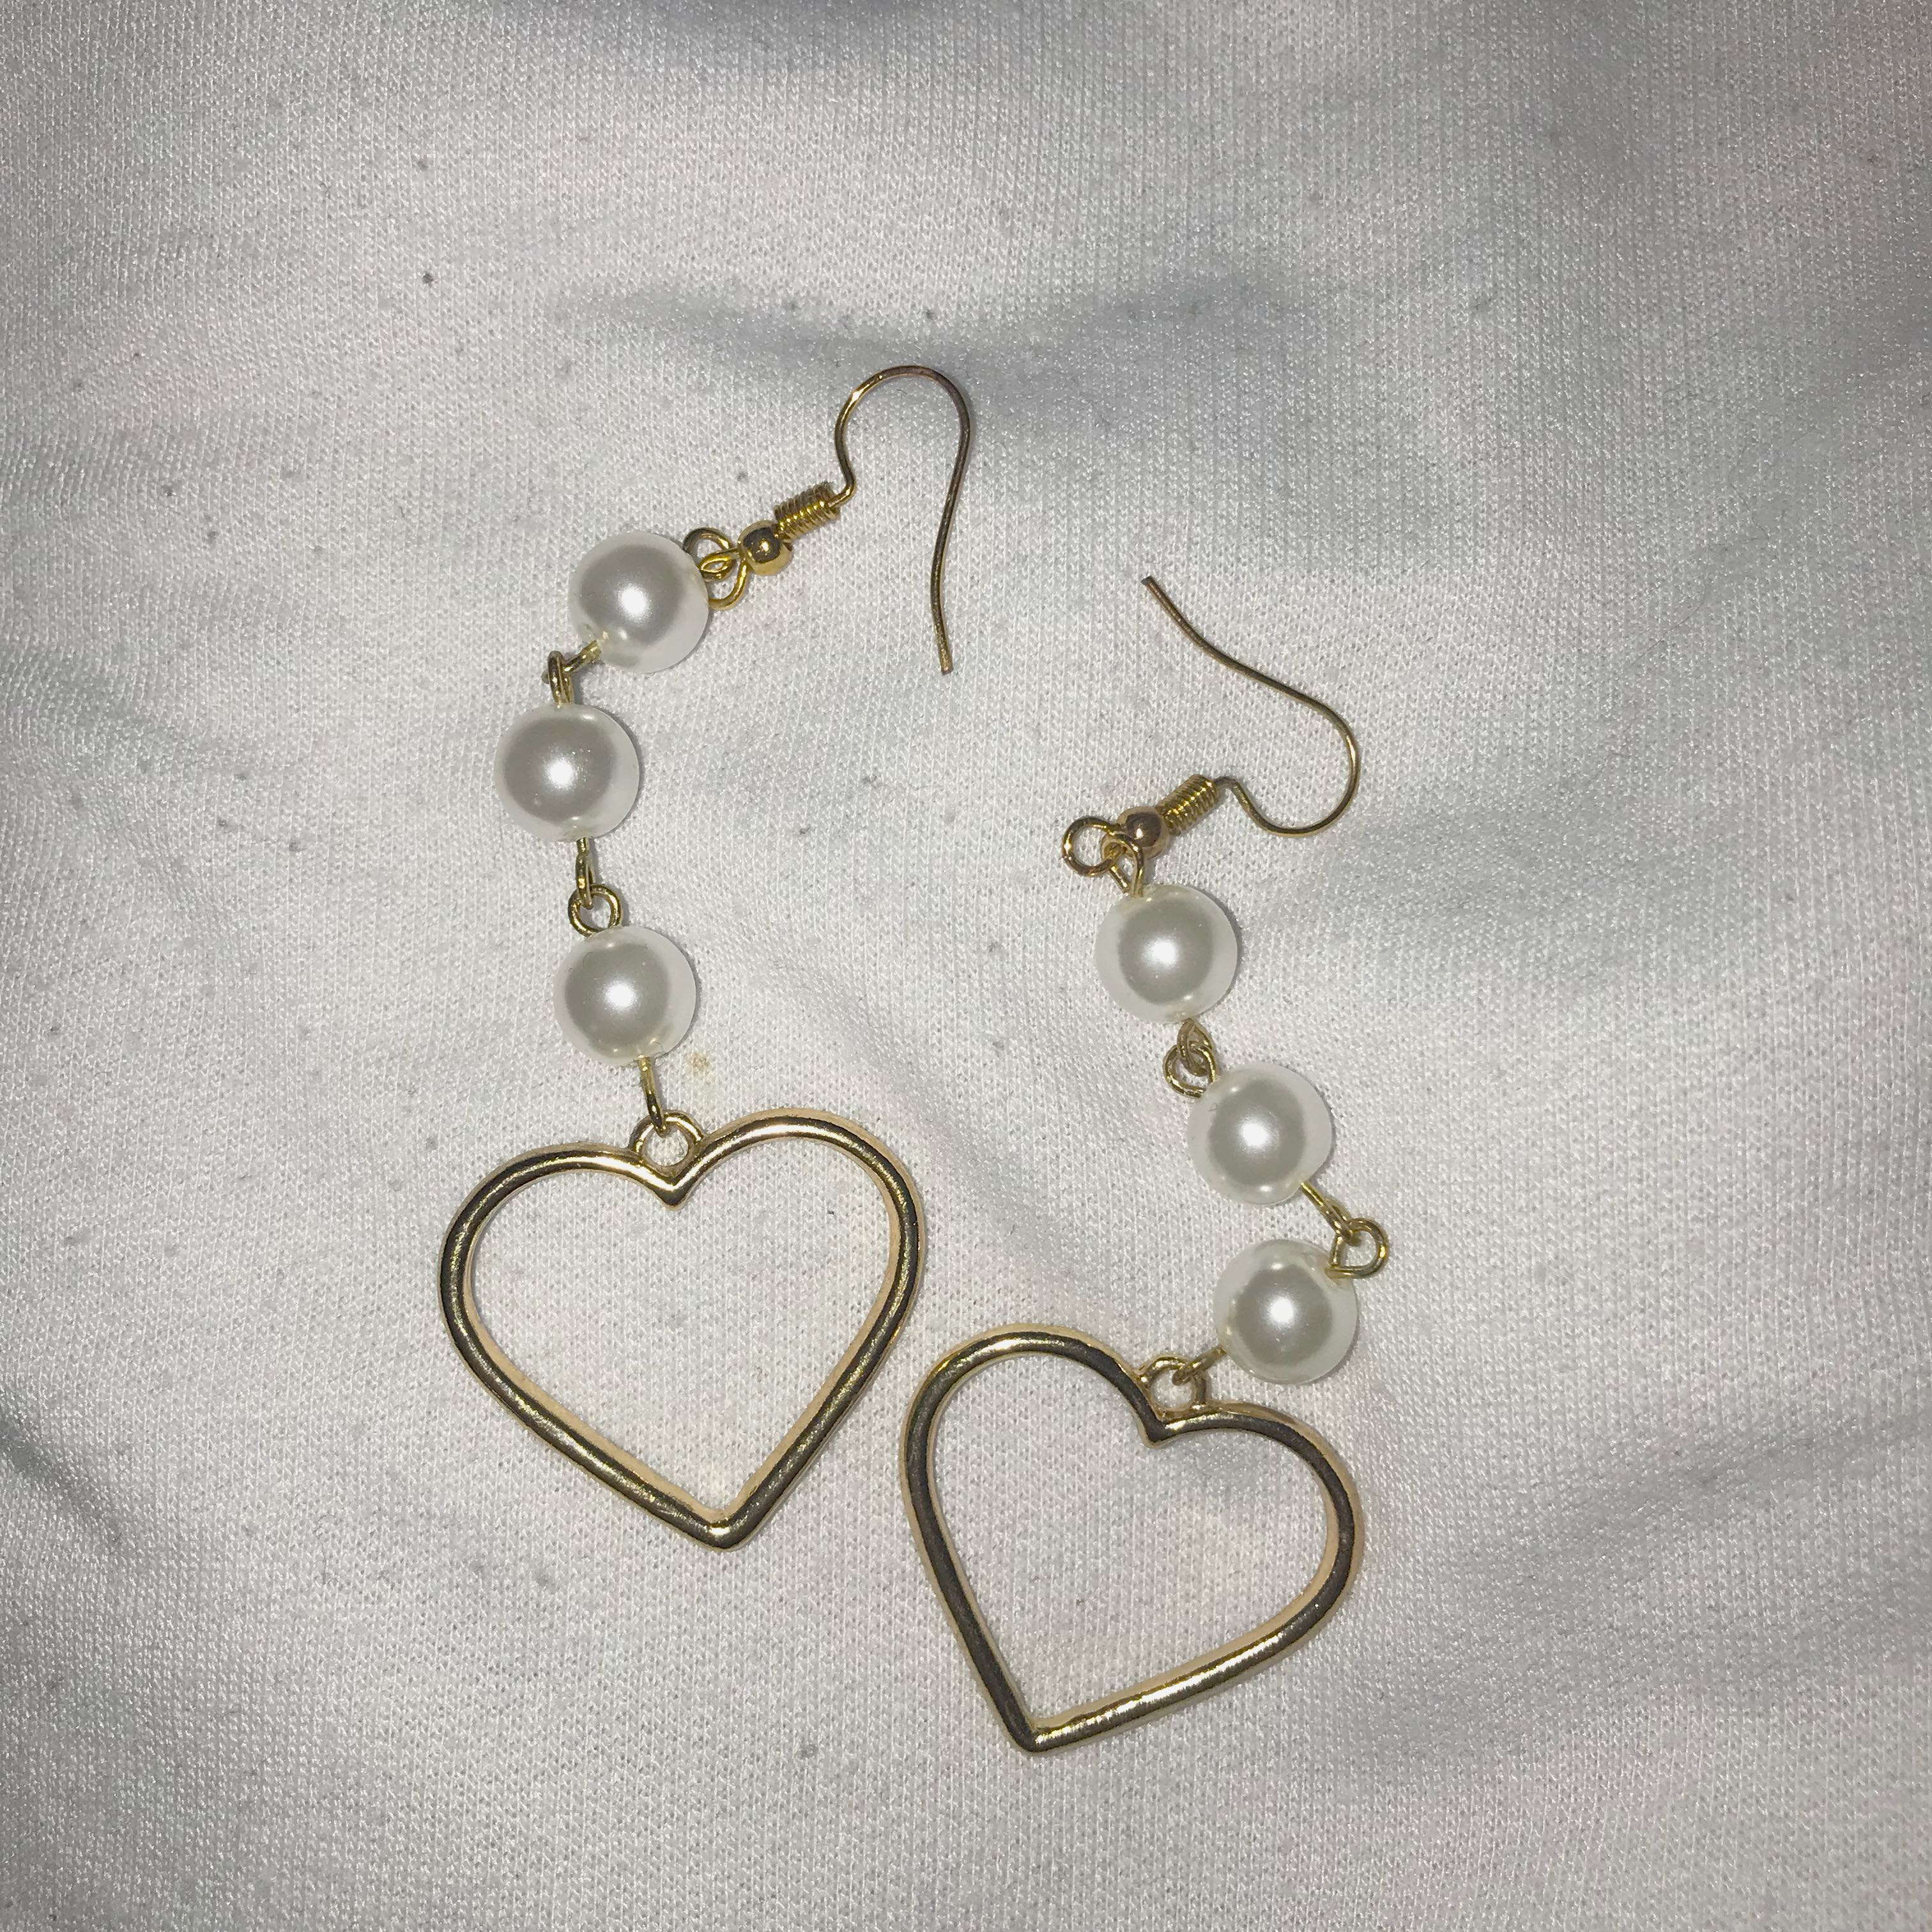 Heart/Pearl Earrings